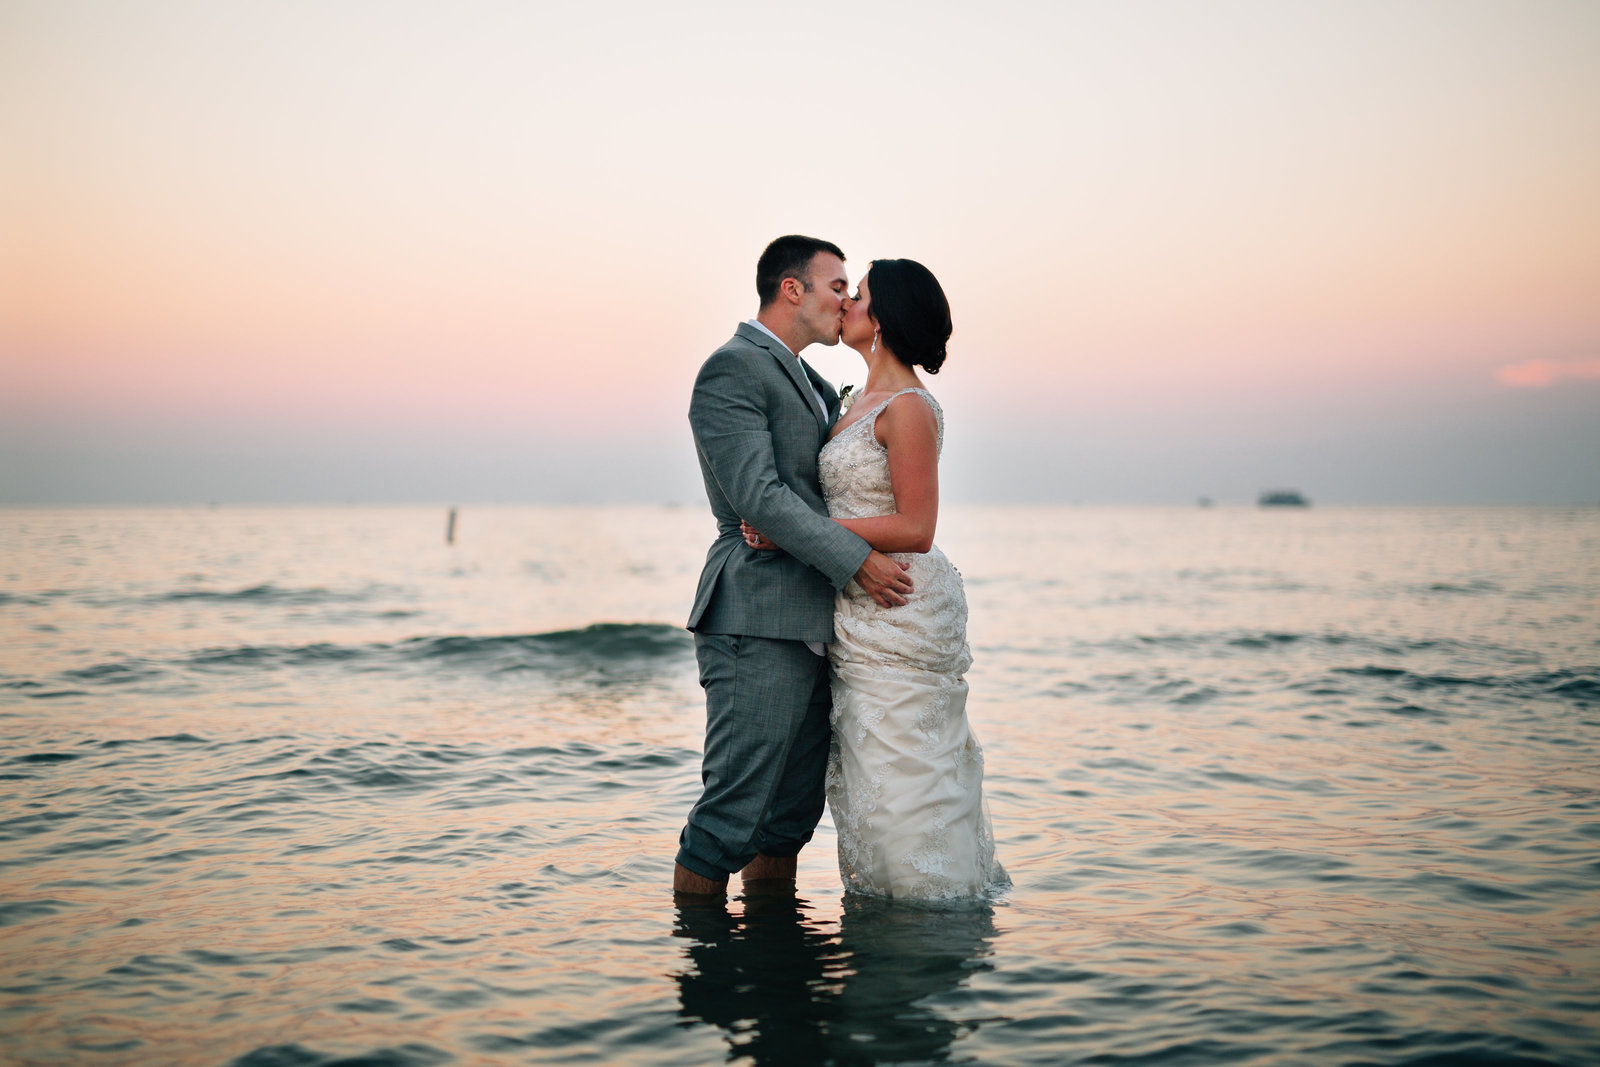 grand rapids wedding photographers 10469